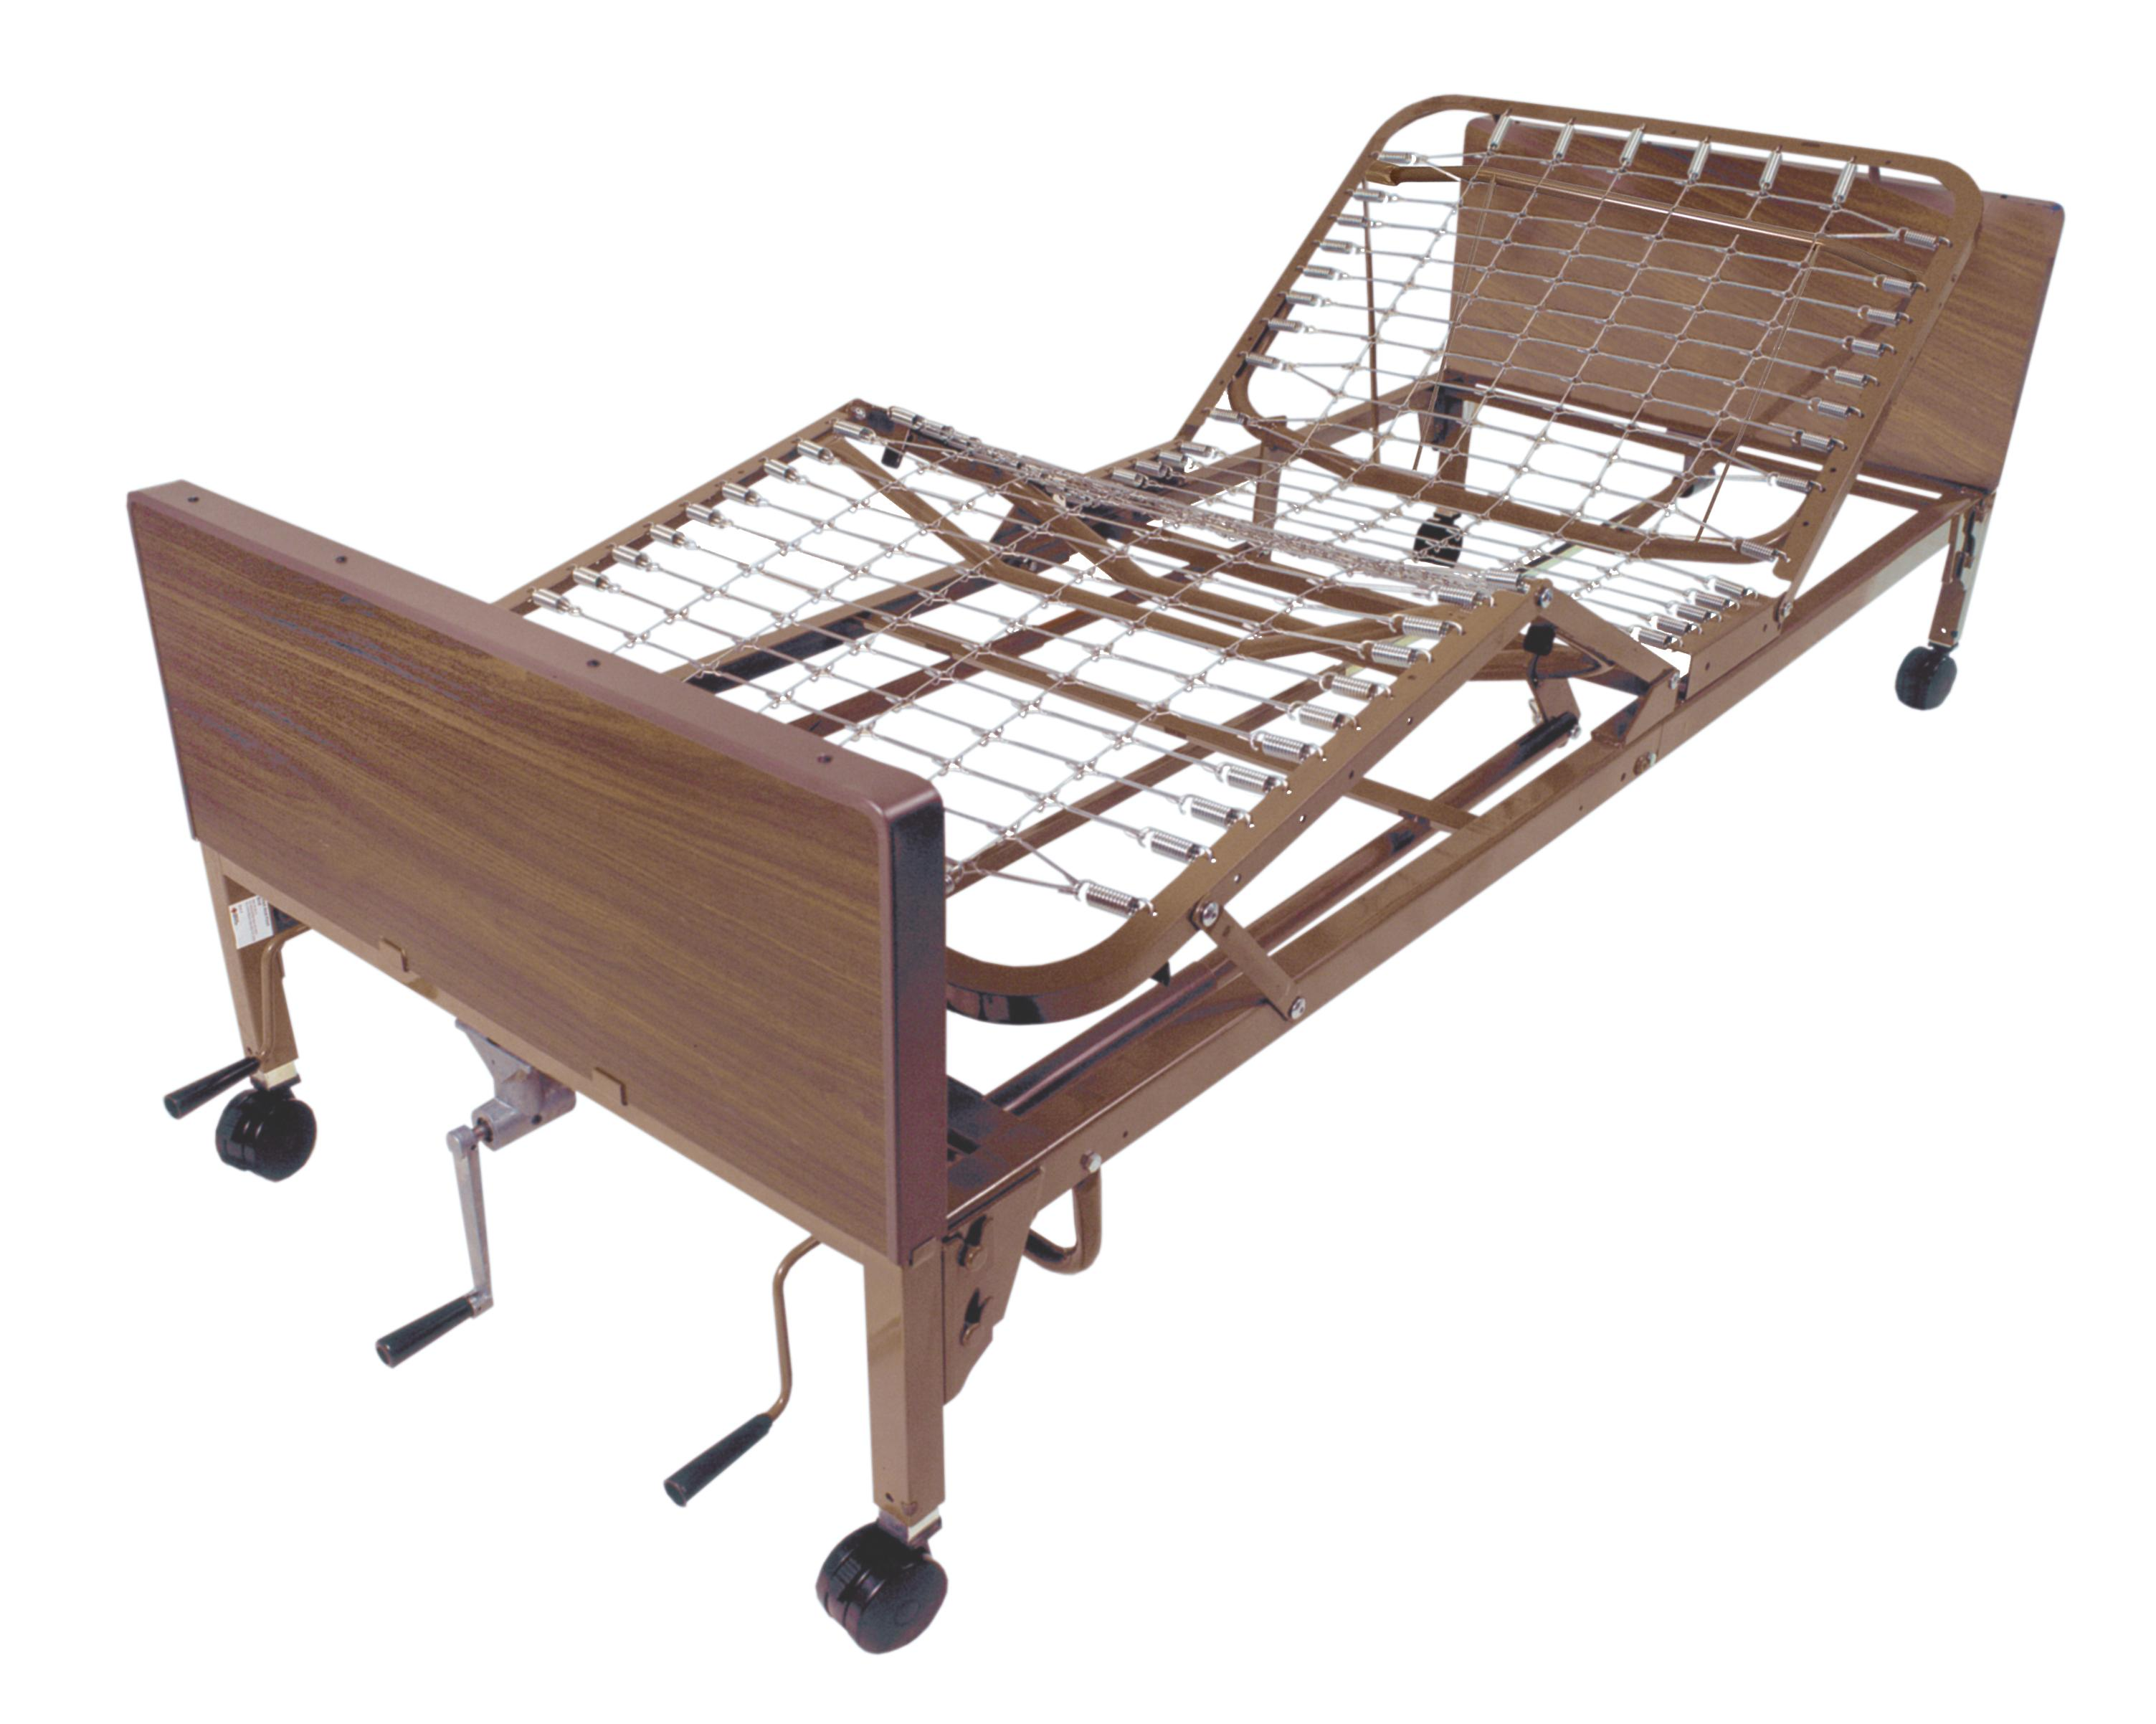 Amazon Com Drive Medical Manual Hospital Bed Brown Full Manual Guide